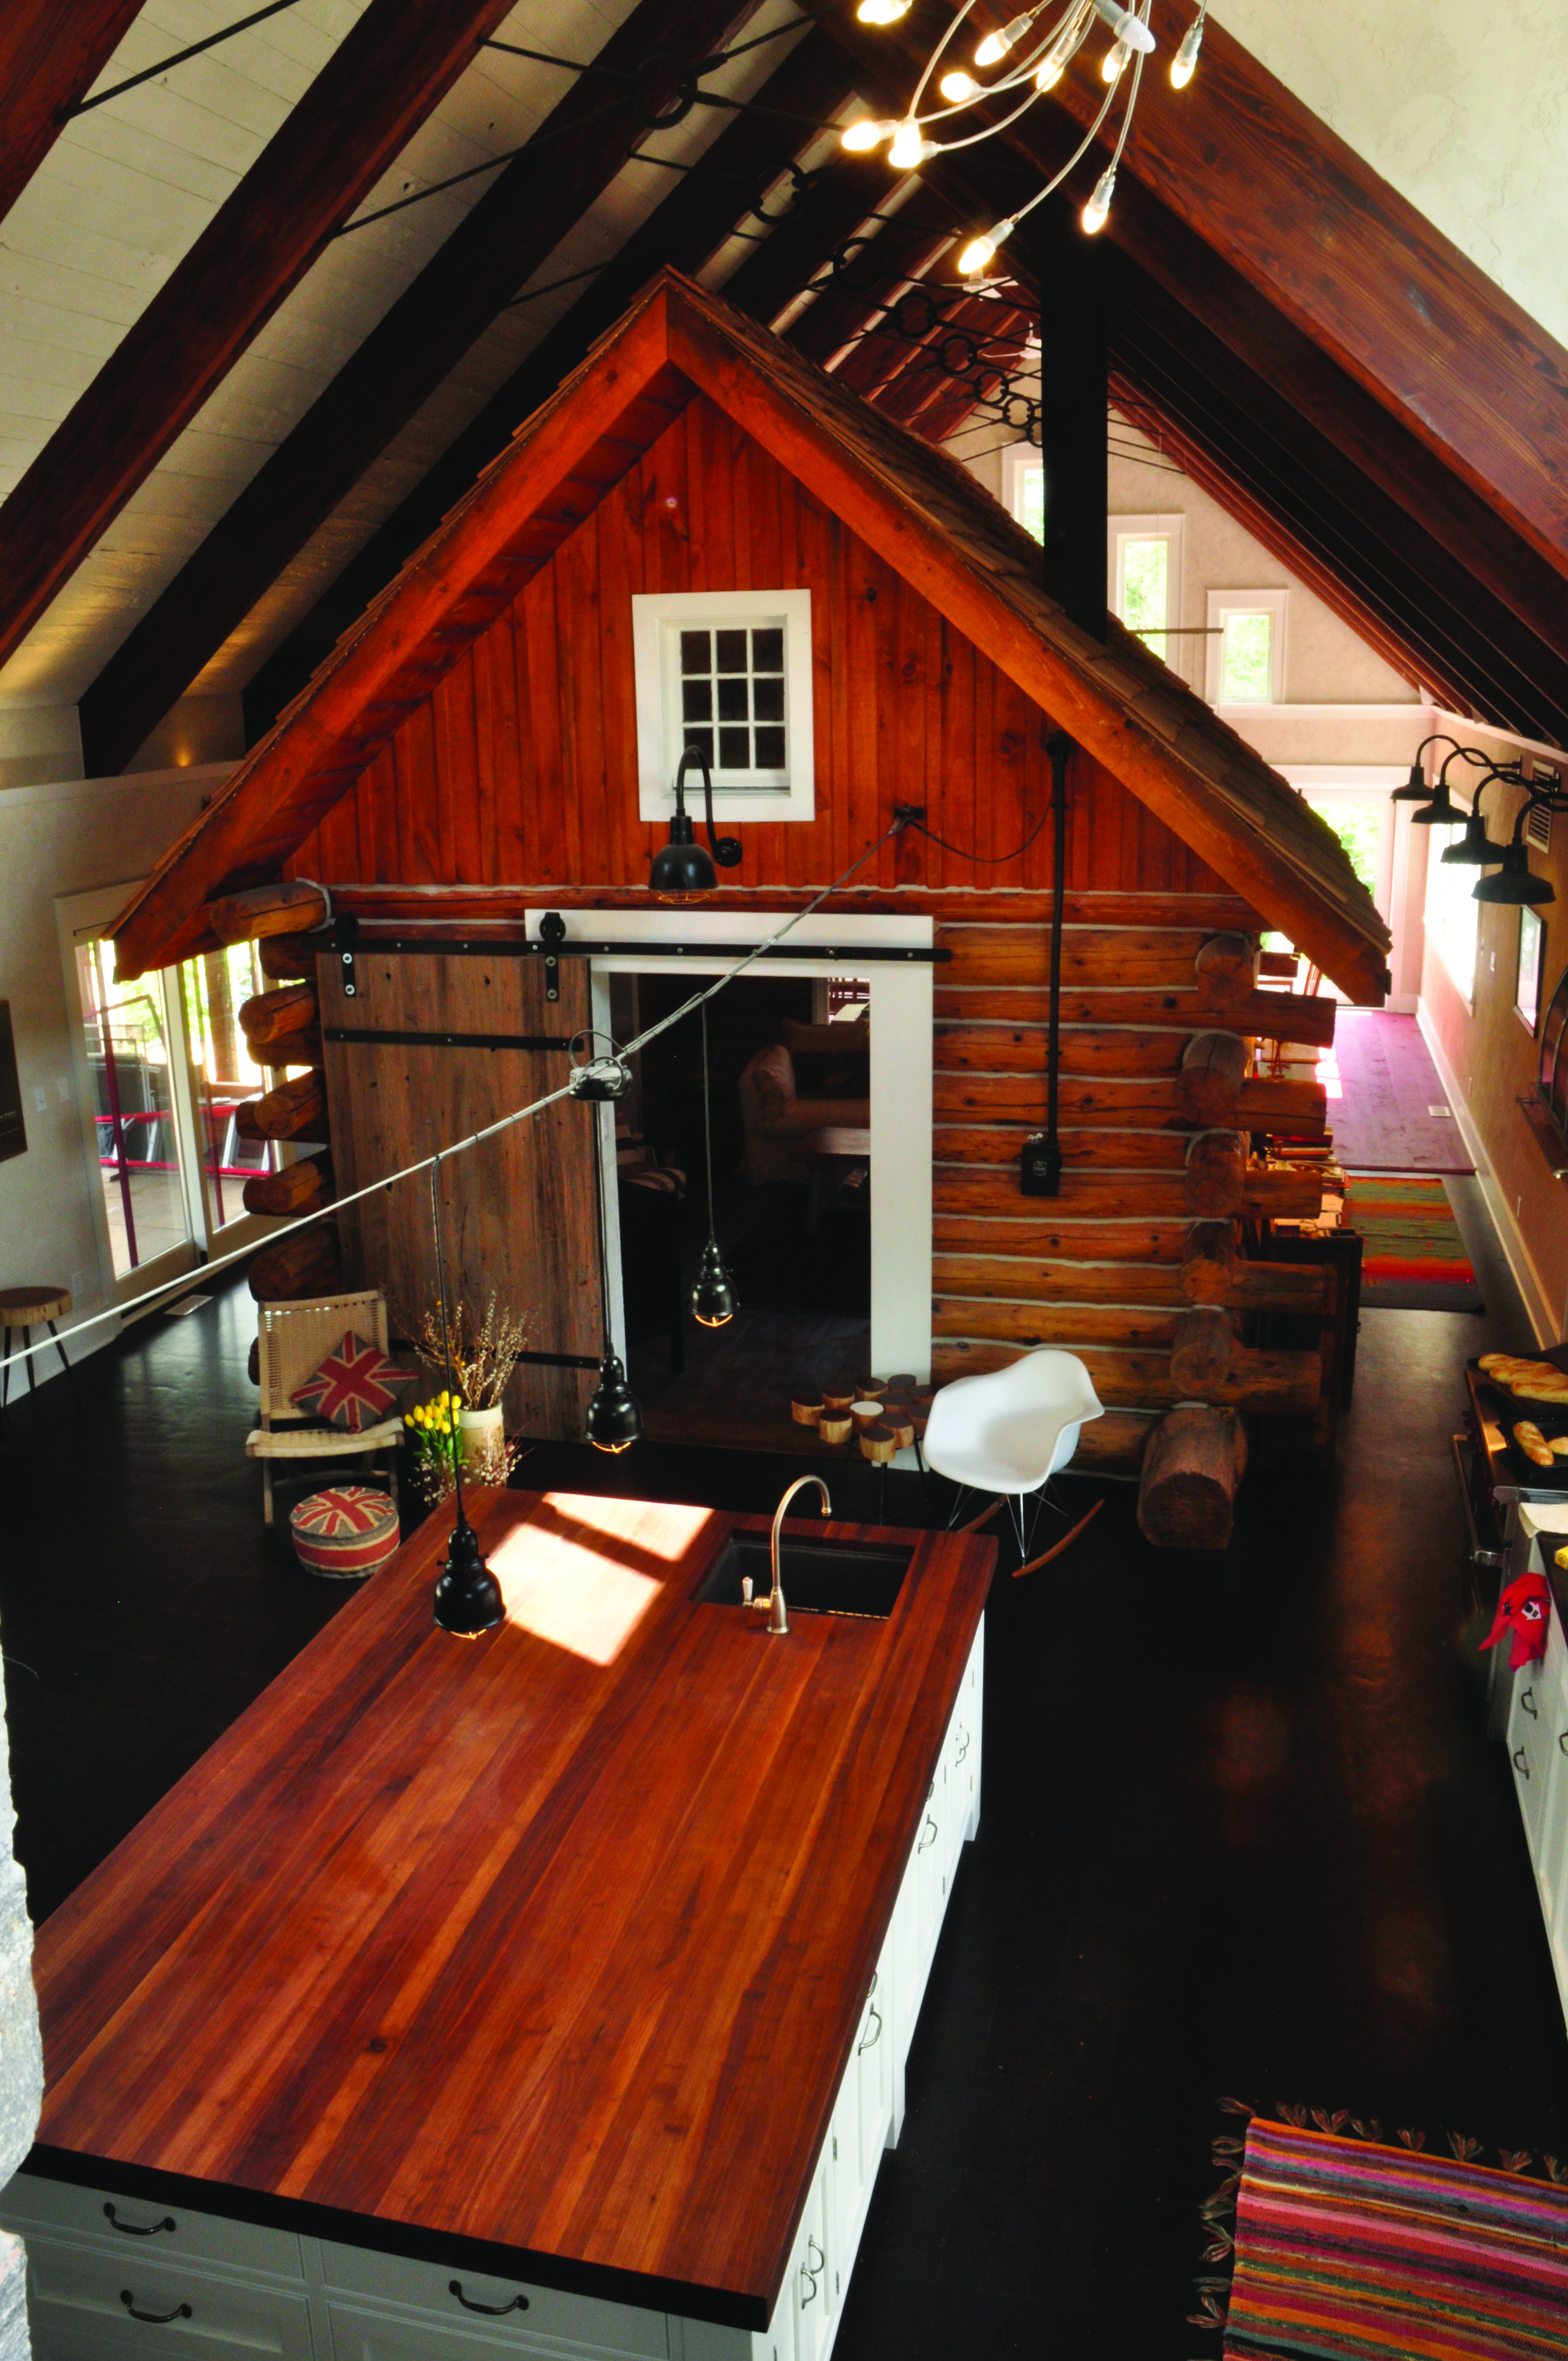 cabins life magazine cbn articles this sings article log cabin really